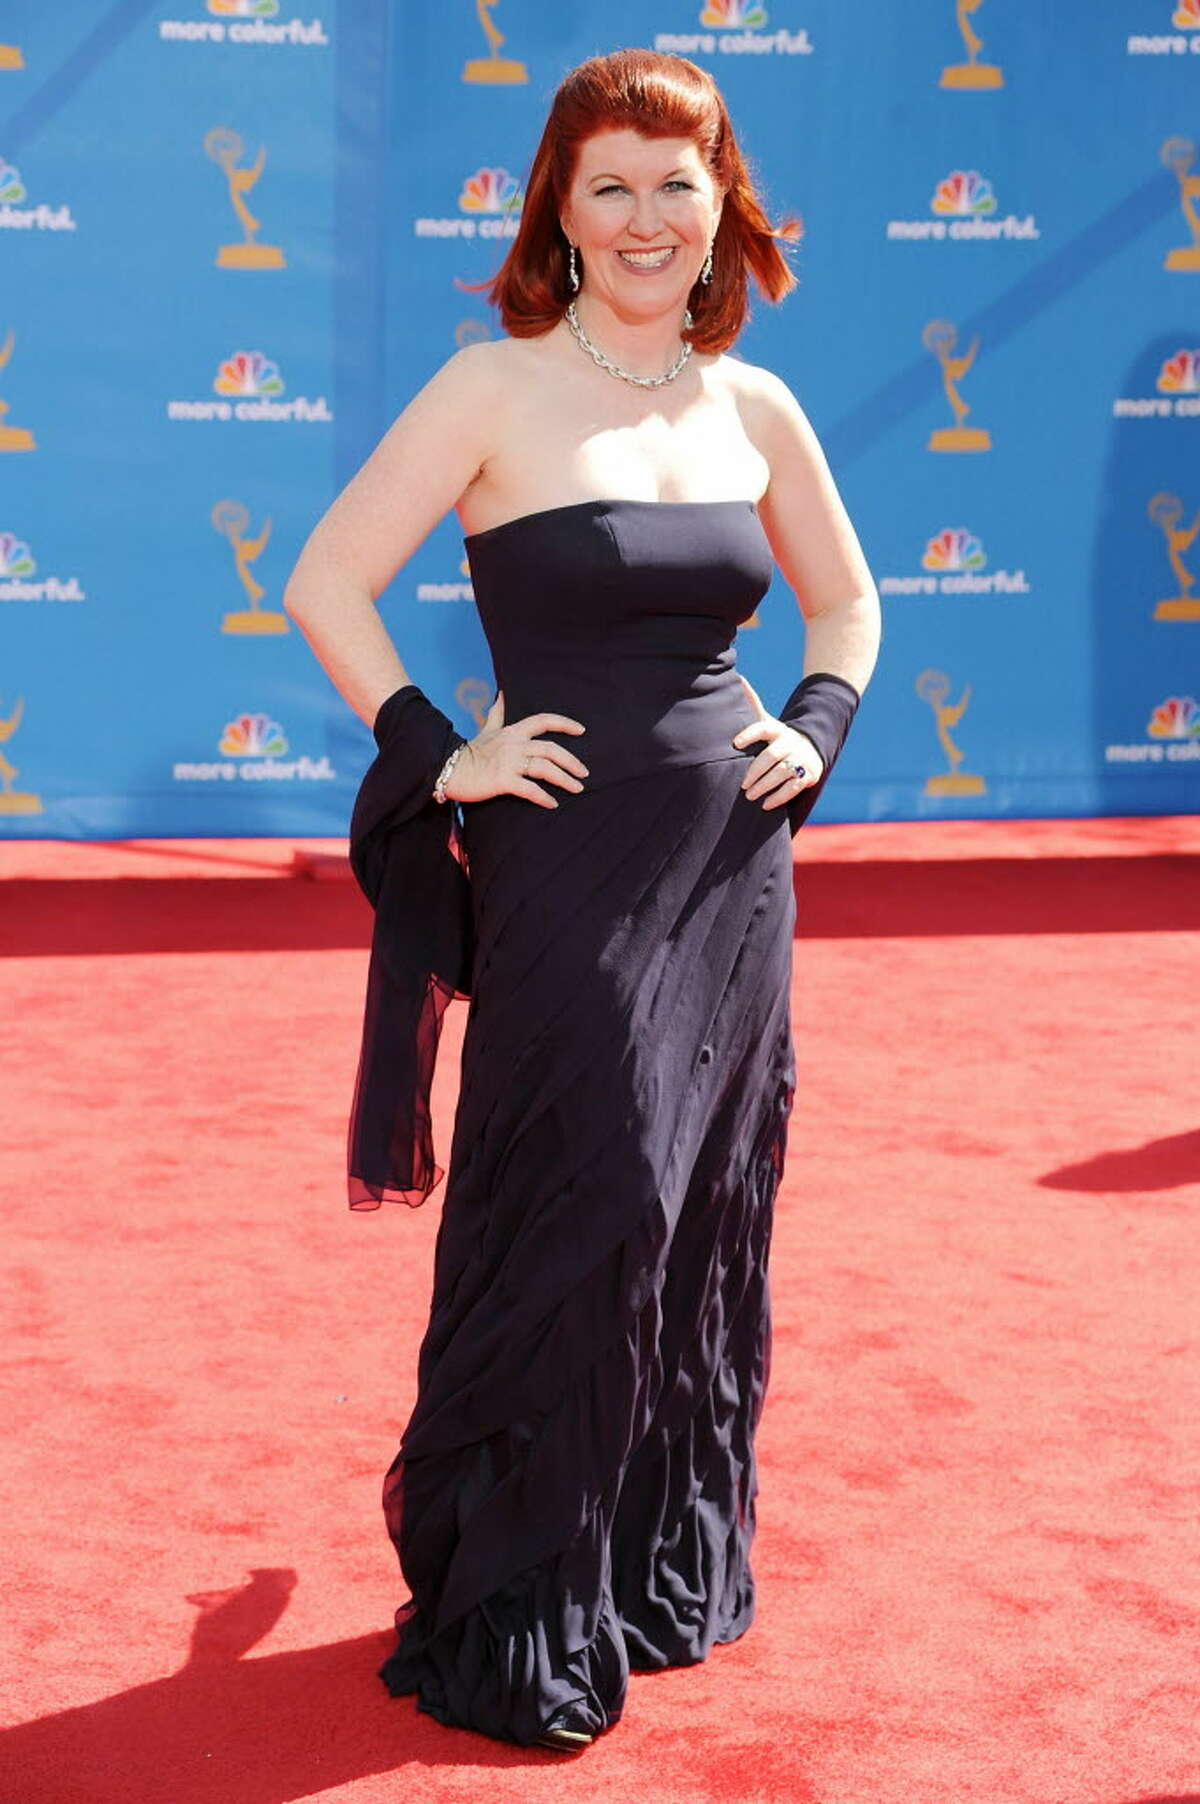 Actress Kate Flannery arrives at the 62nd Annual Primetime Emmy Awards held at the Nokia Theatre L.A. Live on August 29, 2010 in Los Angeles, California. (Photo by Frazer Harrison/Getty Images)